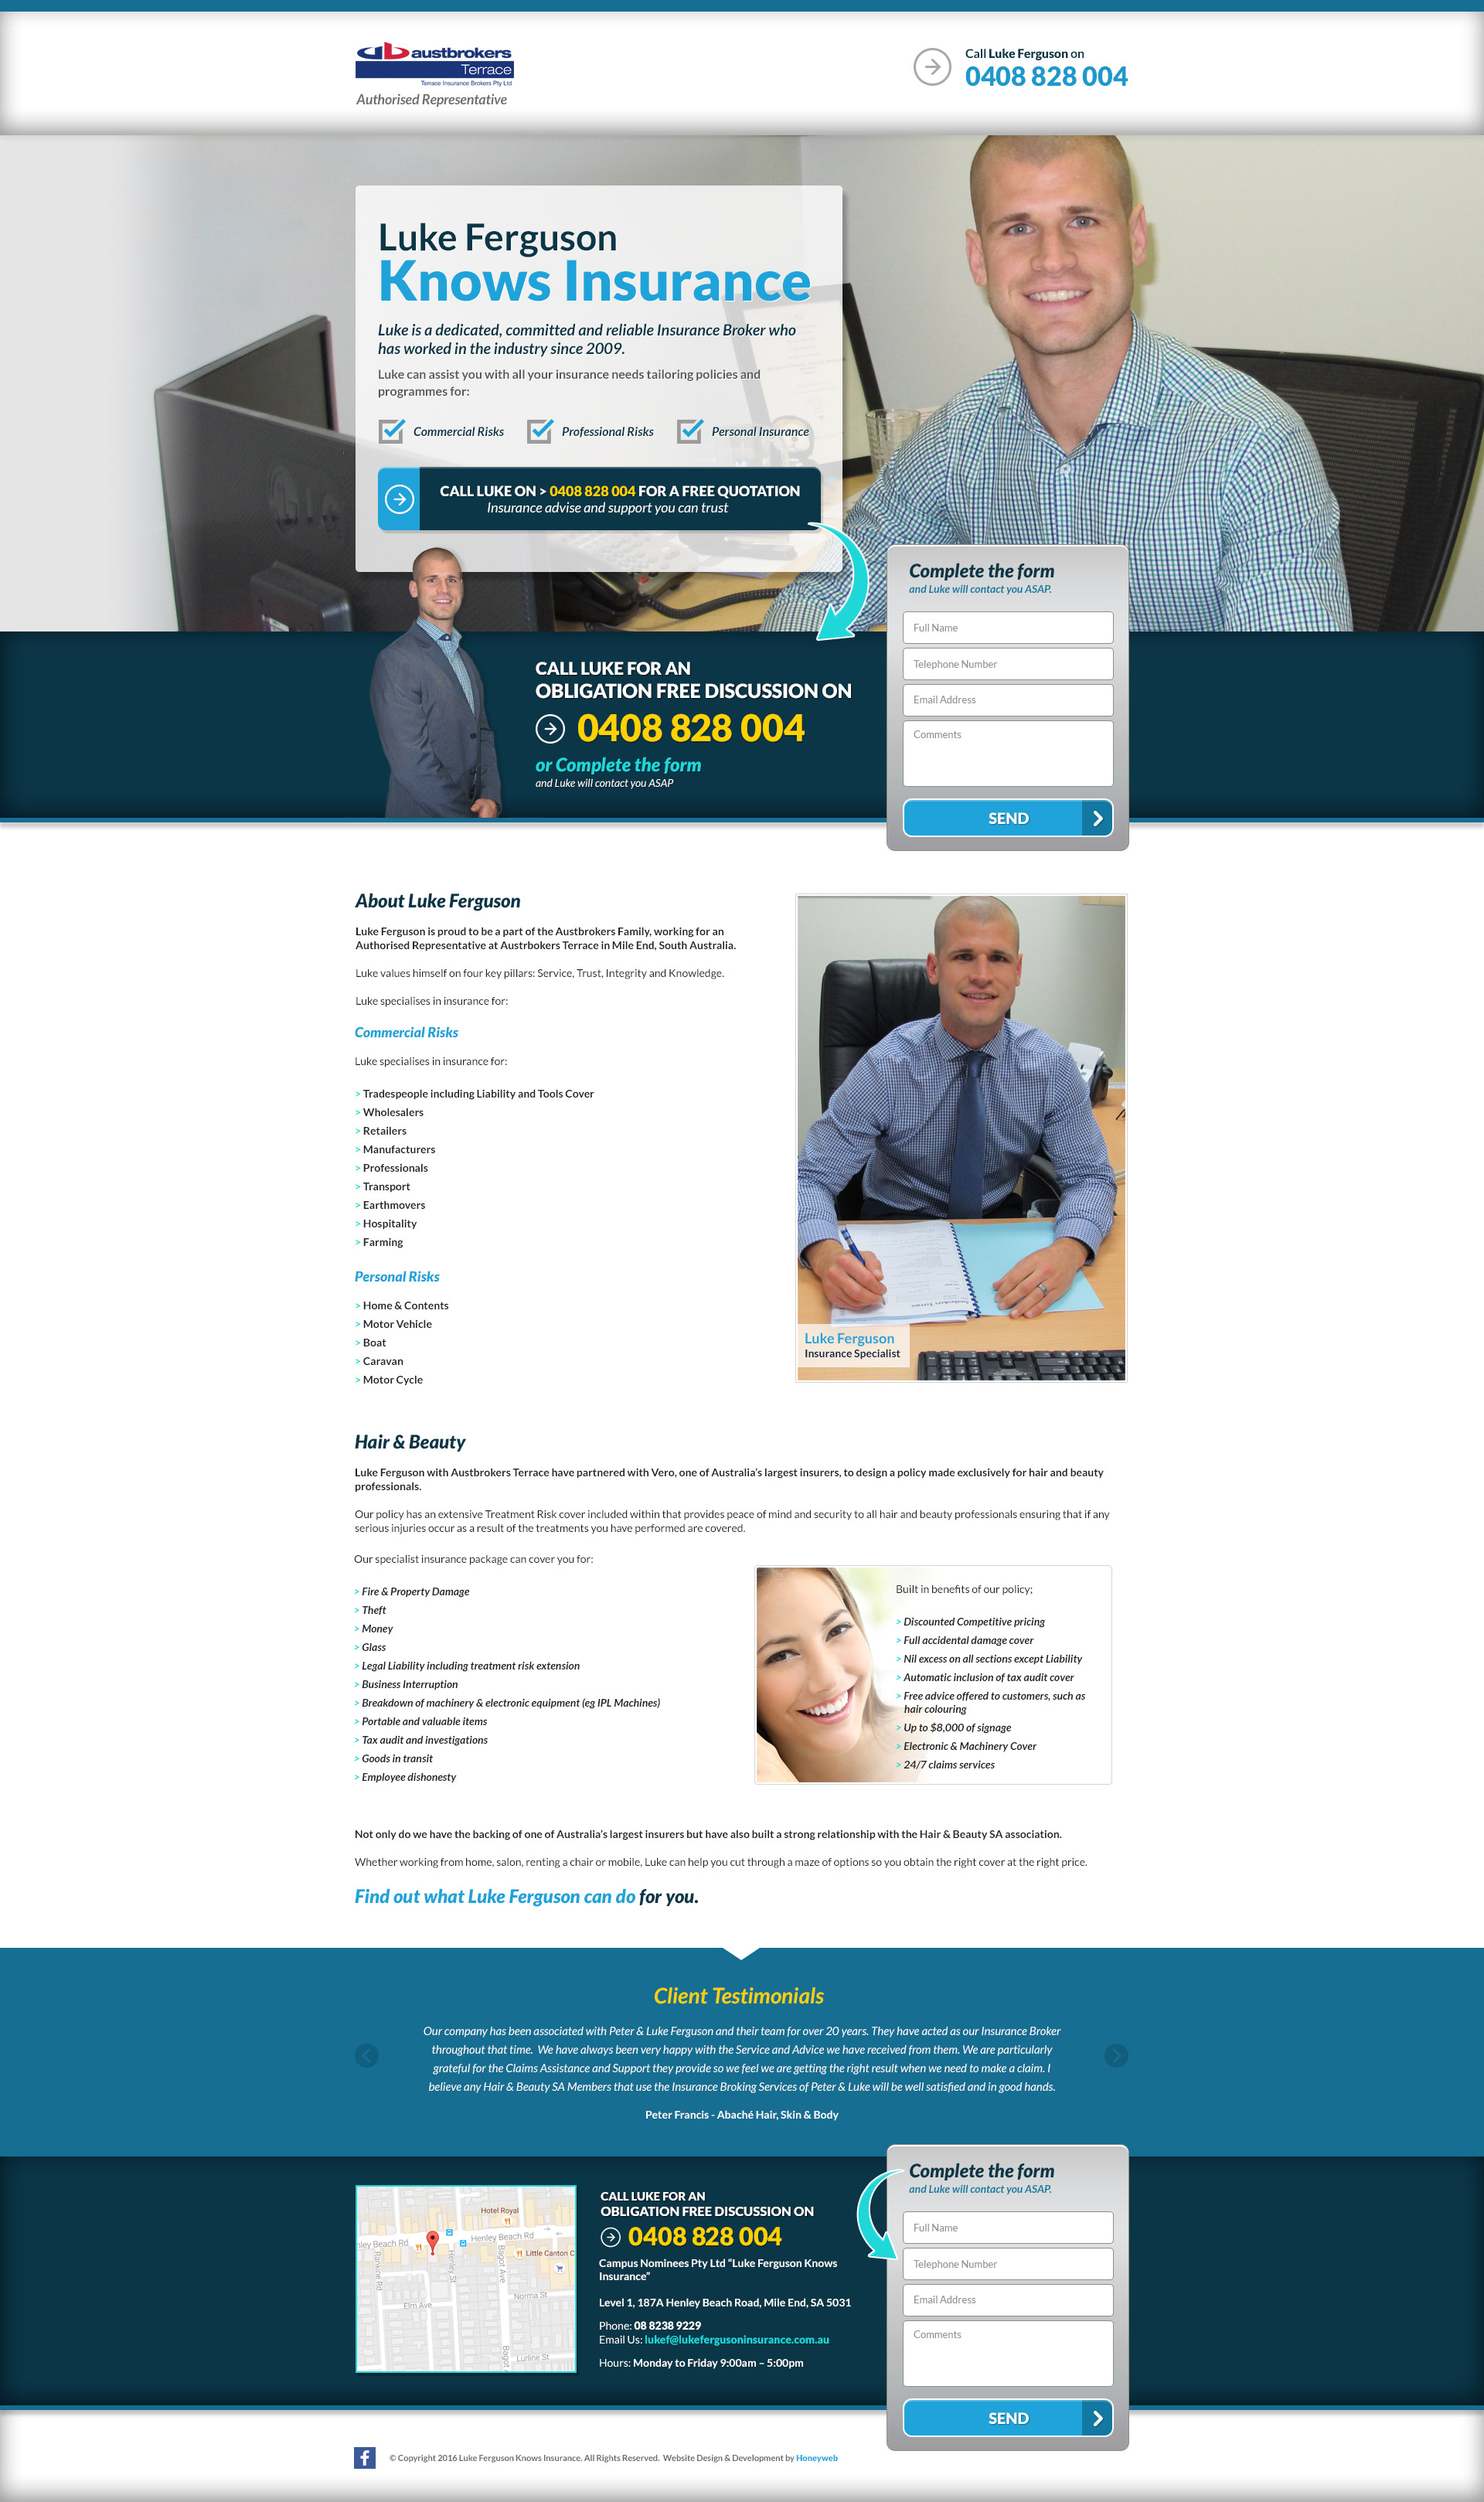 Check out the NEW Luke Ferguson Knows Insurance Landing Page Website Designed & Constructed by Honeyweb Online Marketing Solutions